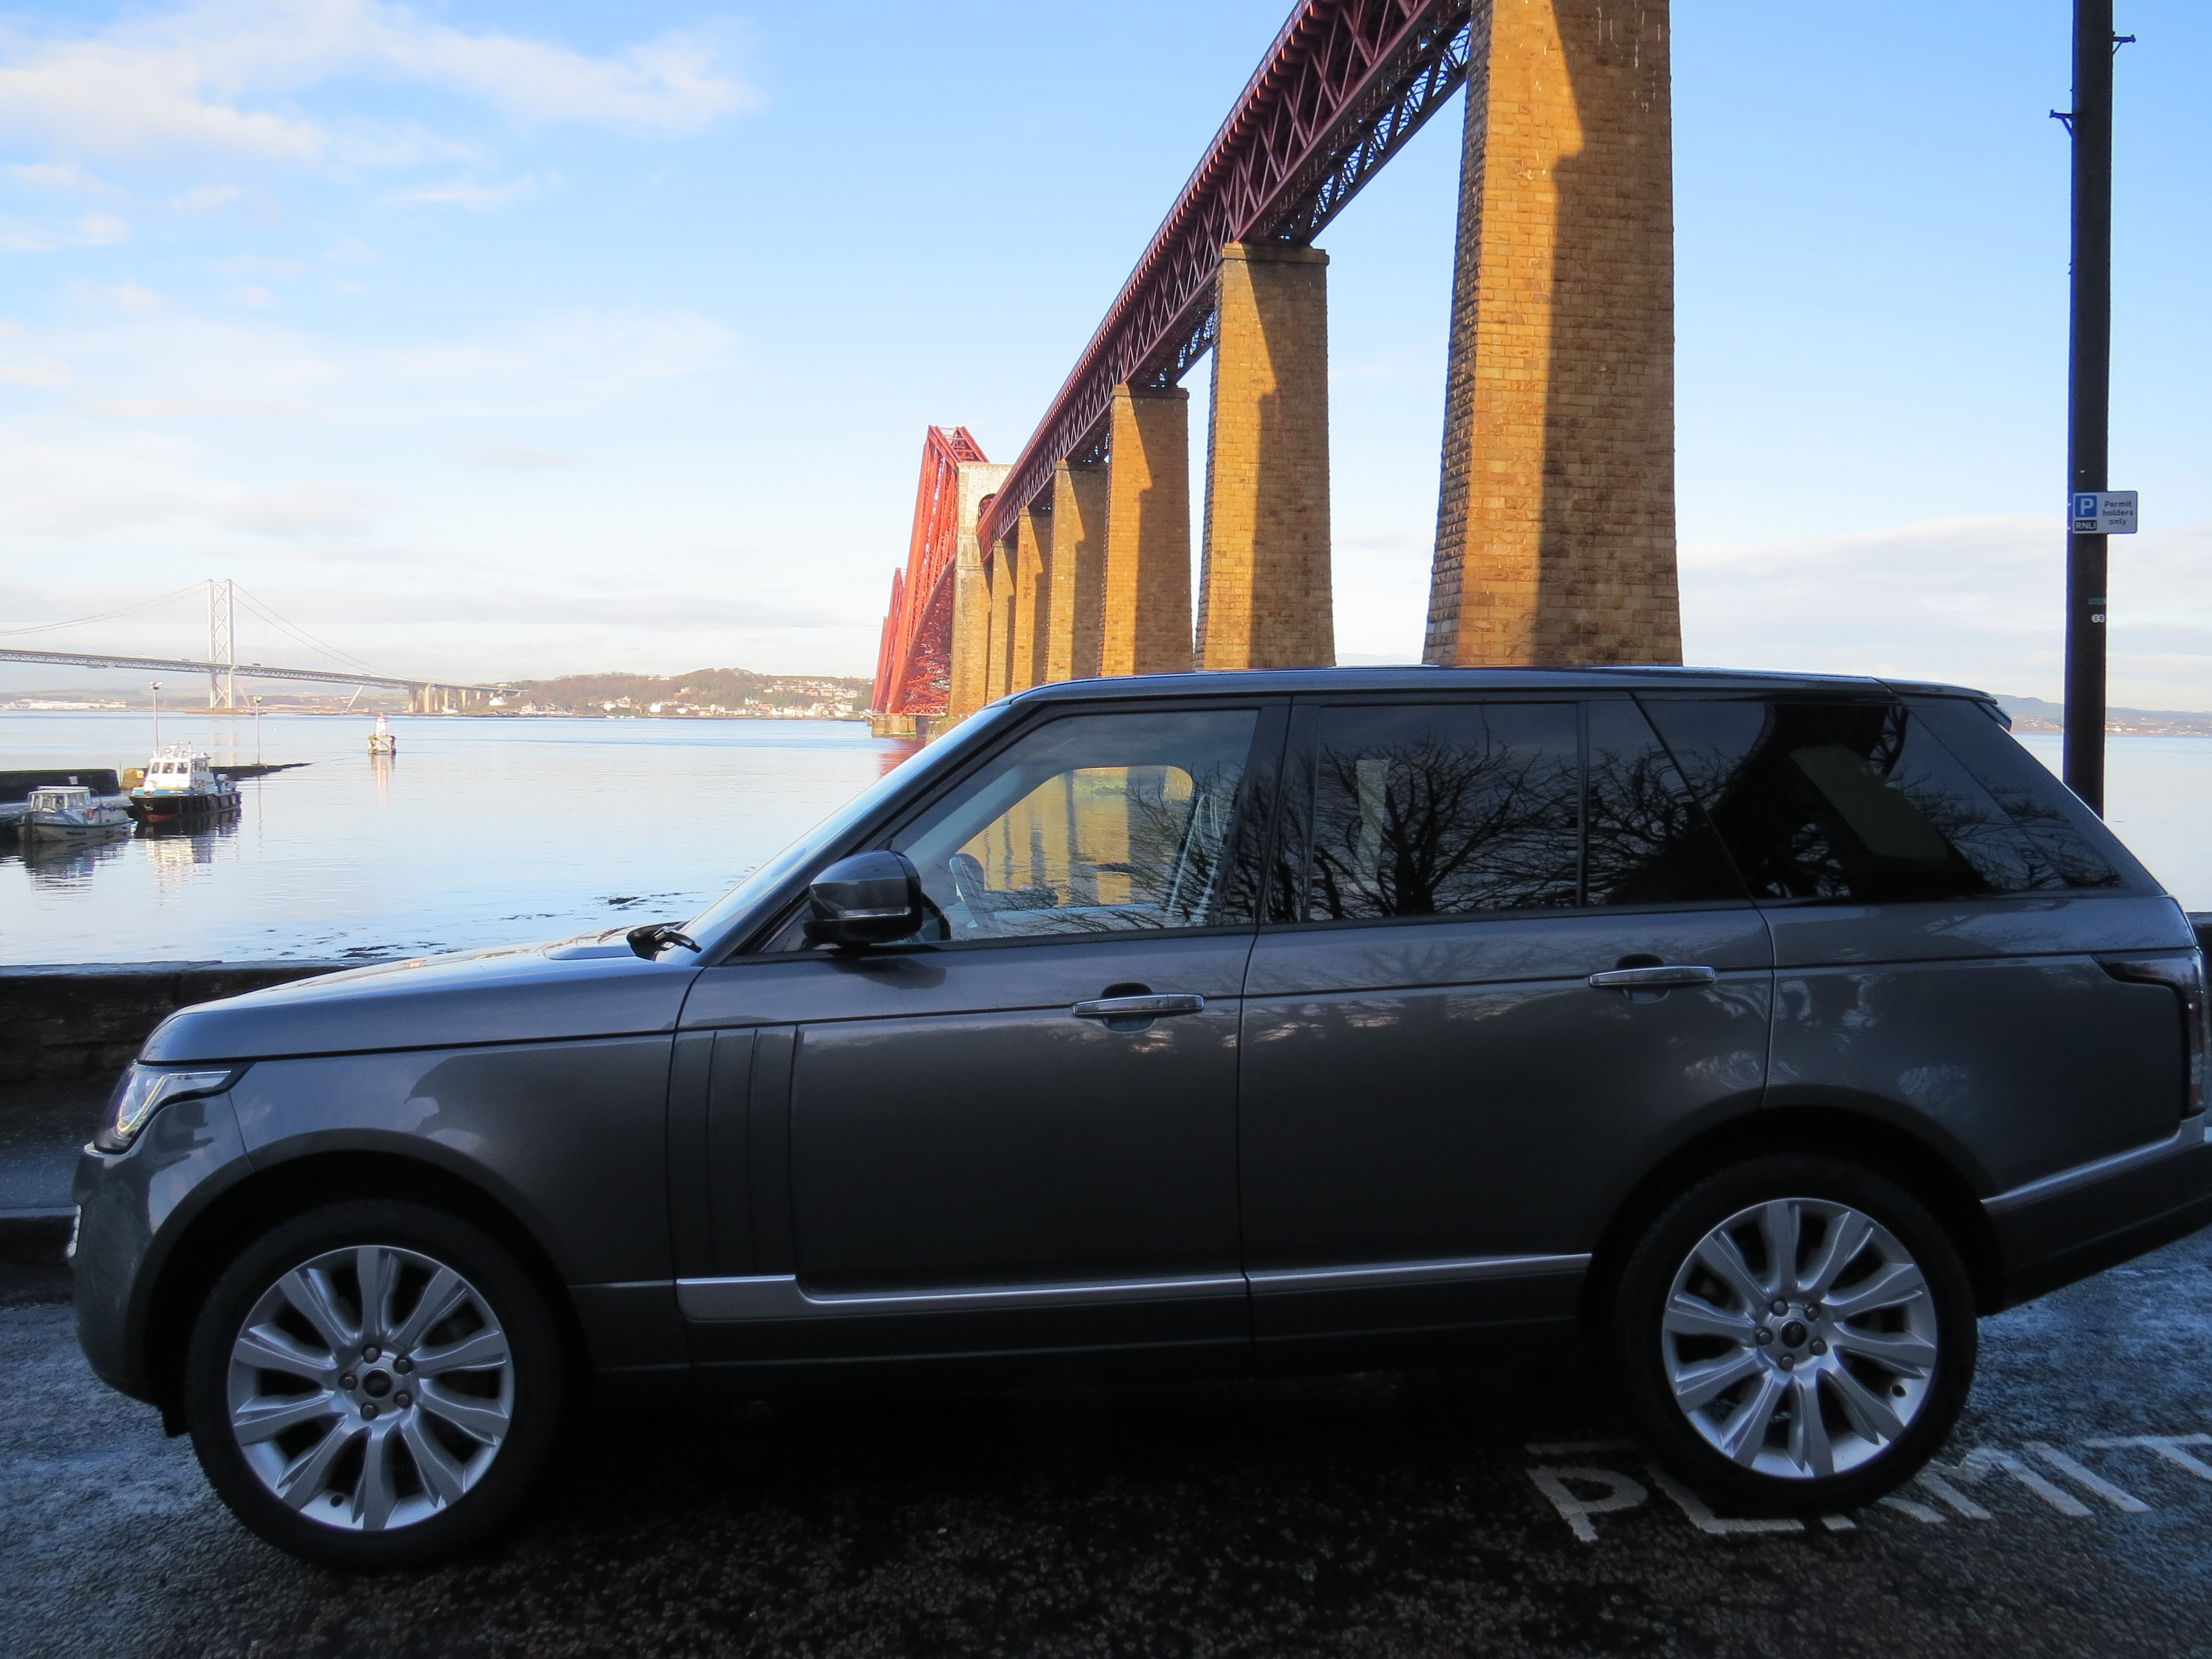 Range Rover Private Tours of Scotland - Forth Bridges